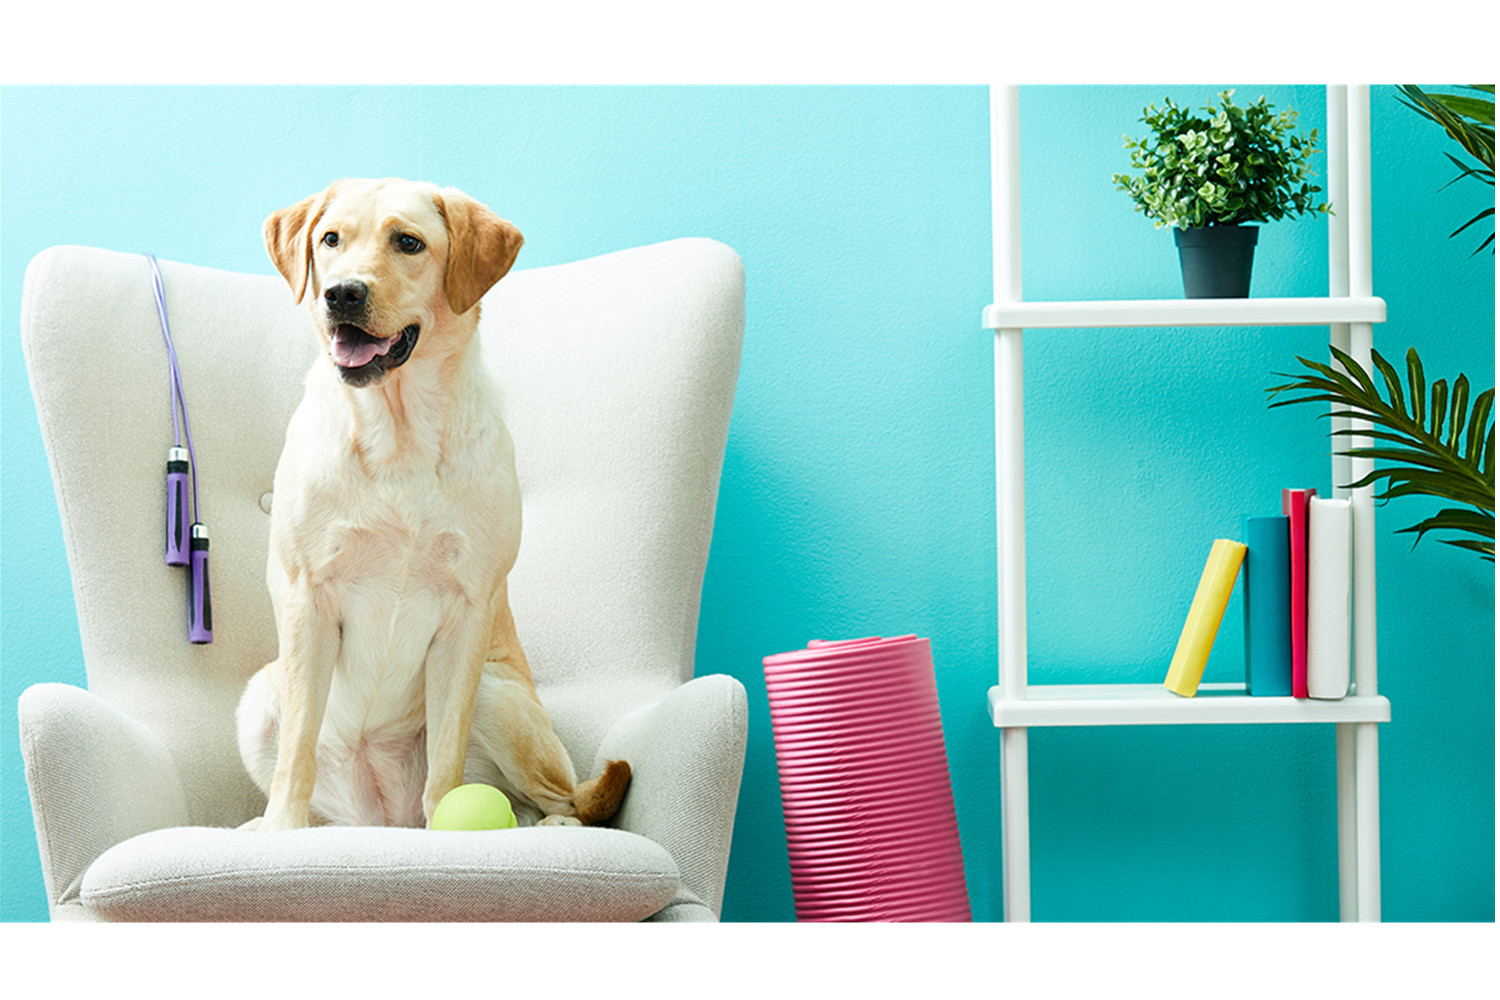 Apartment Living: Pets Fit Everything